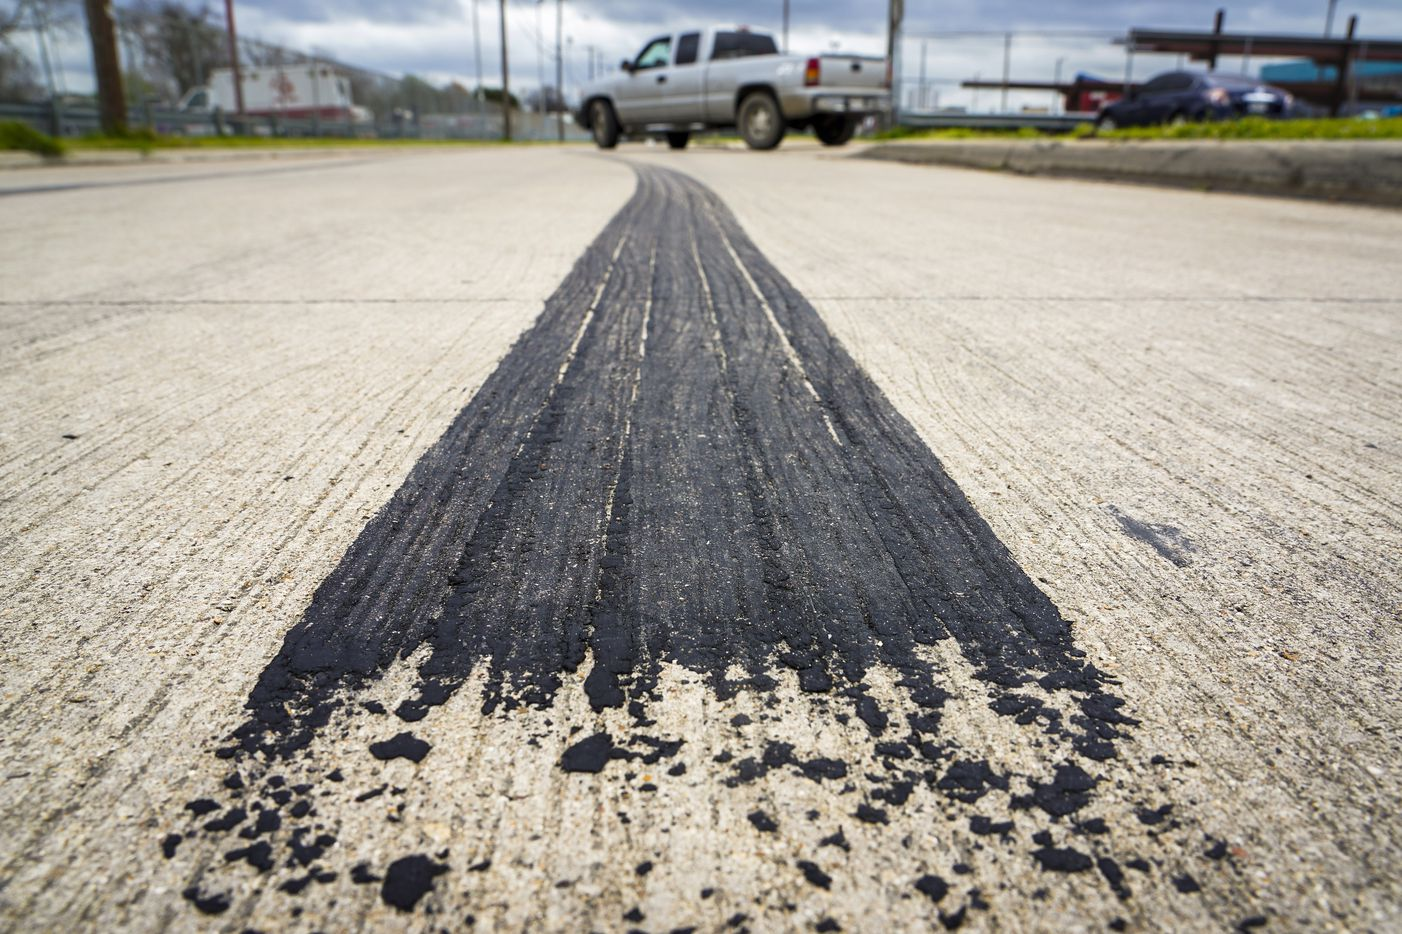 Skid marks are seen in the 1400 S. Henderson Avenue on Monday, March 9, 2020, in Dallas.